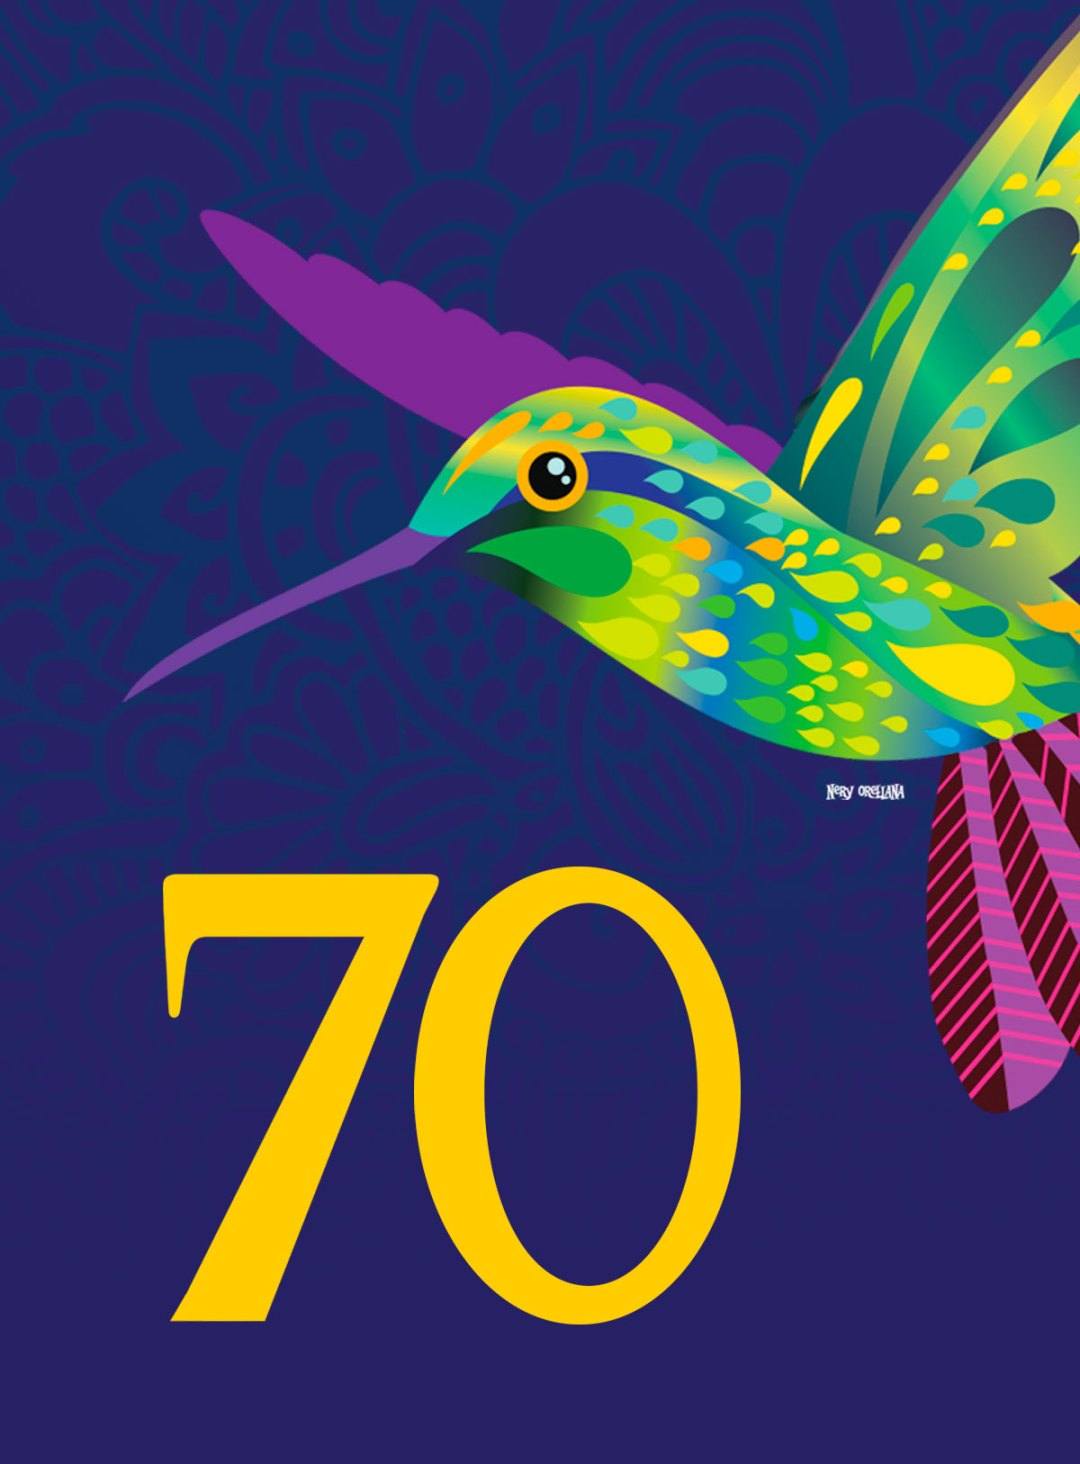 70th Anniversary (Setenta) album cover humming bird.